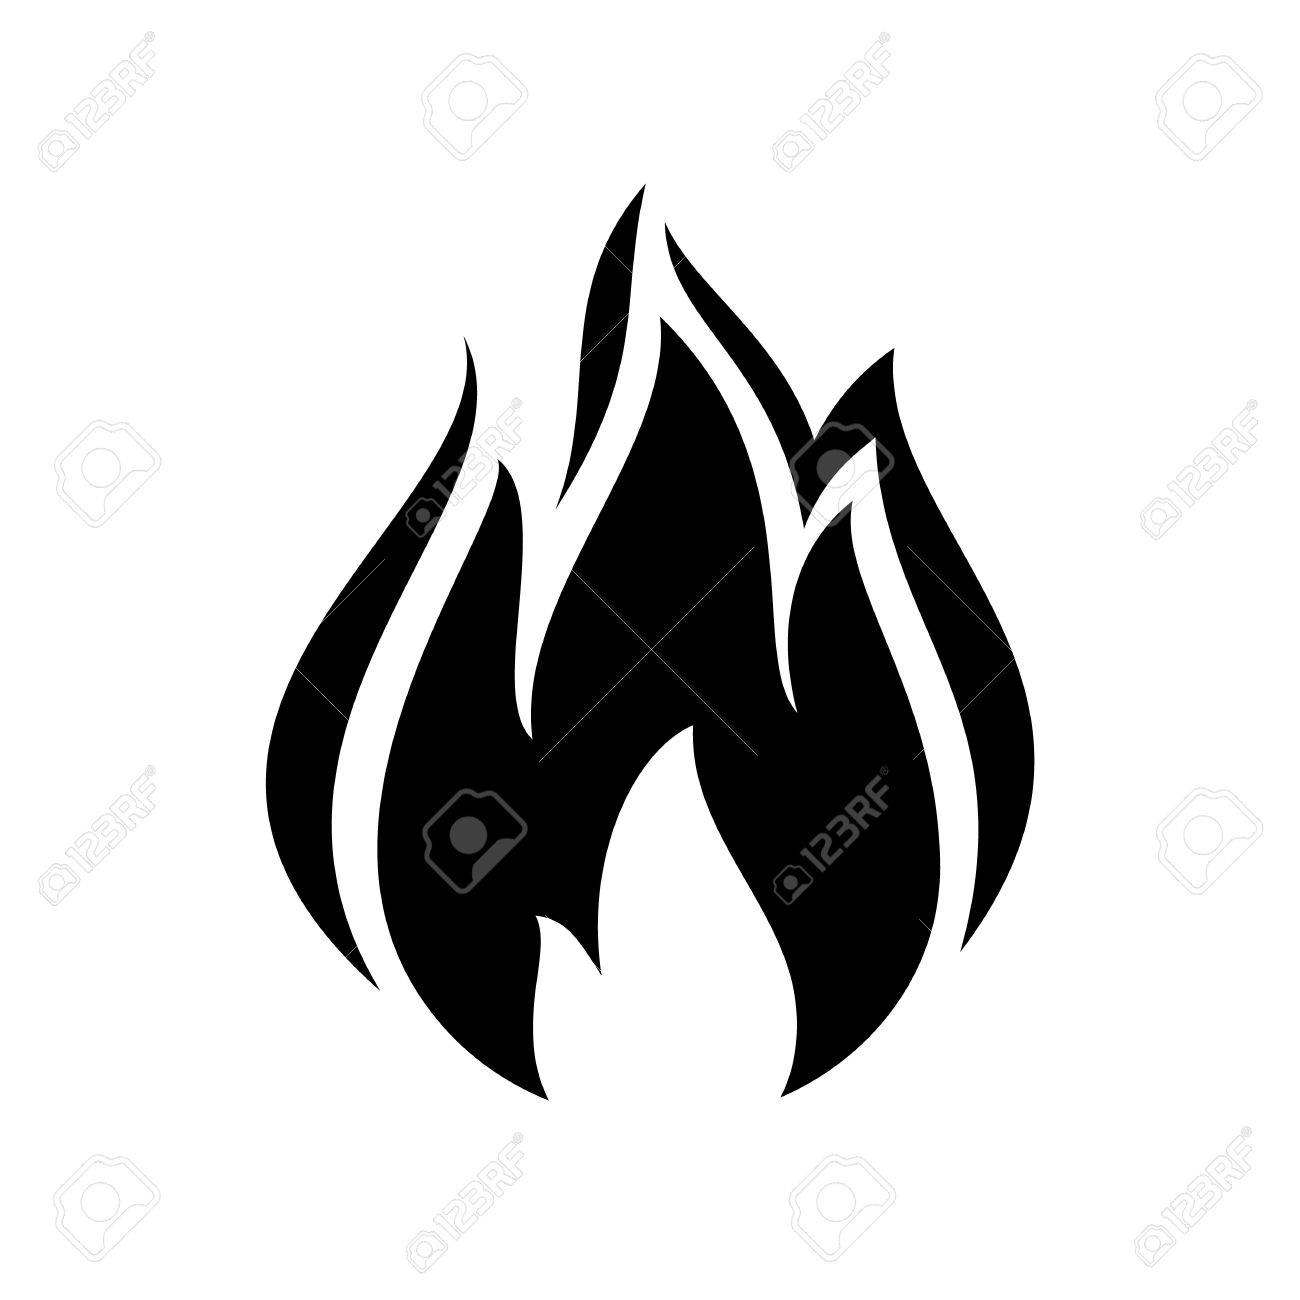 Fire flame icon, black icon isolated on white background.